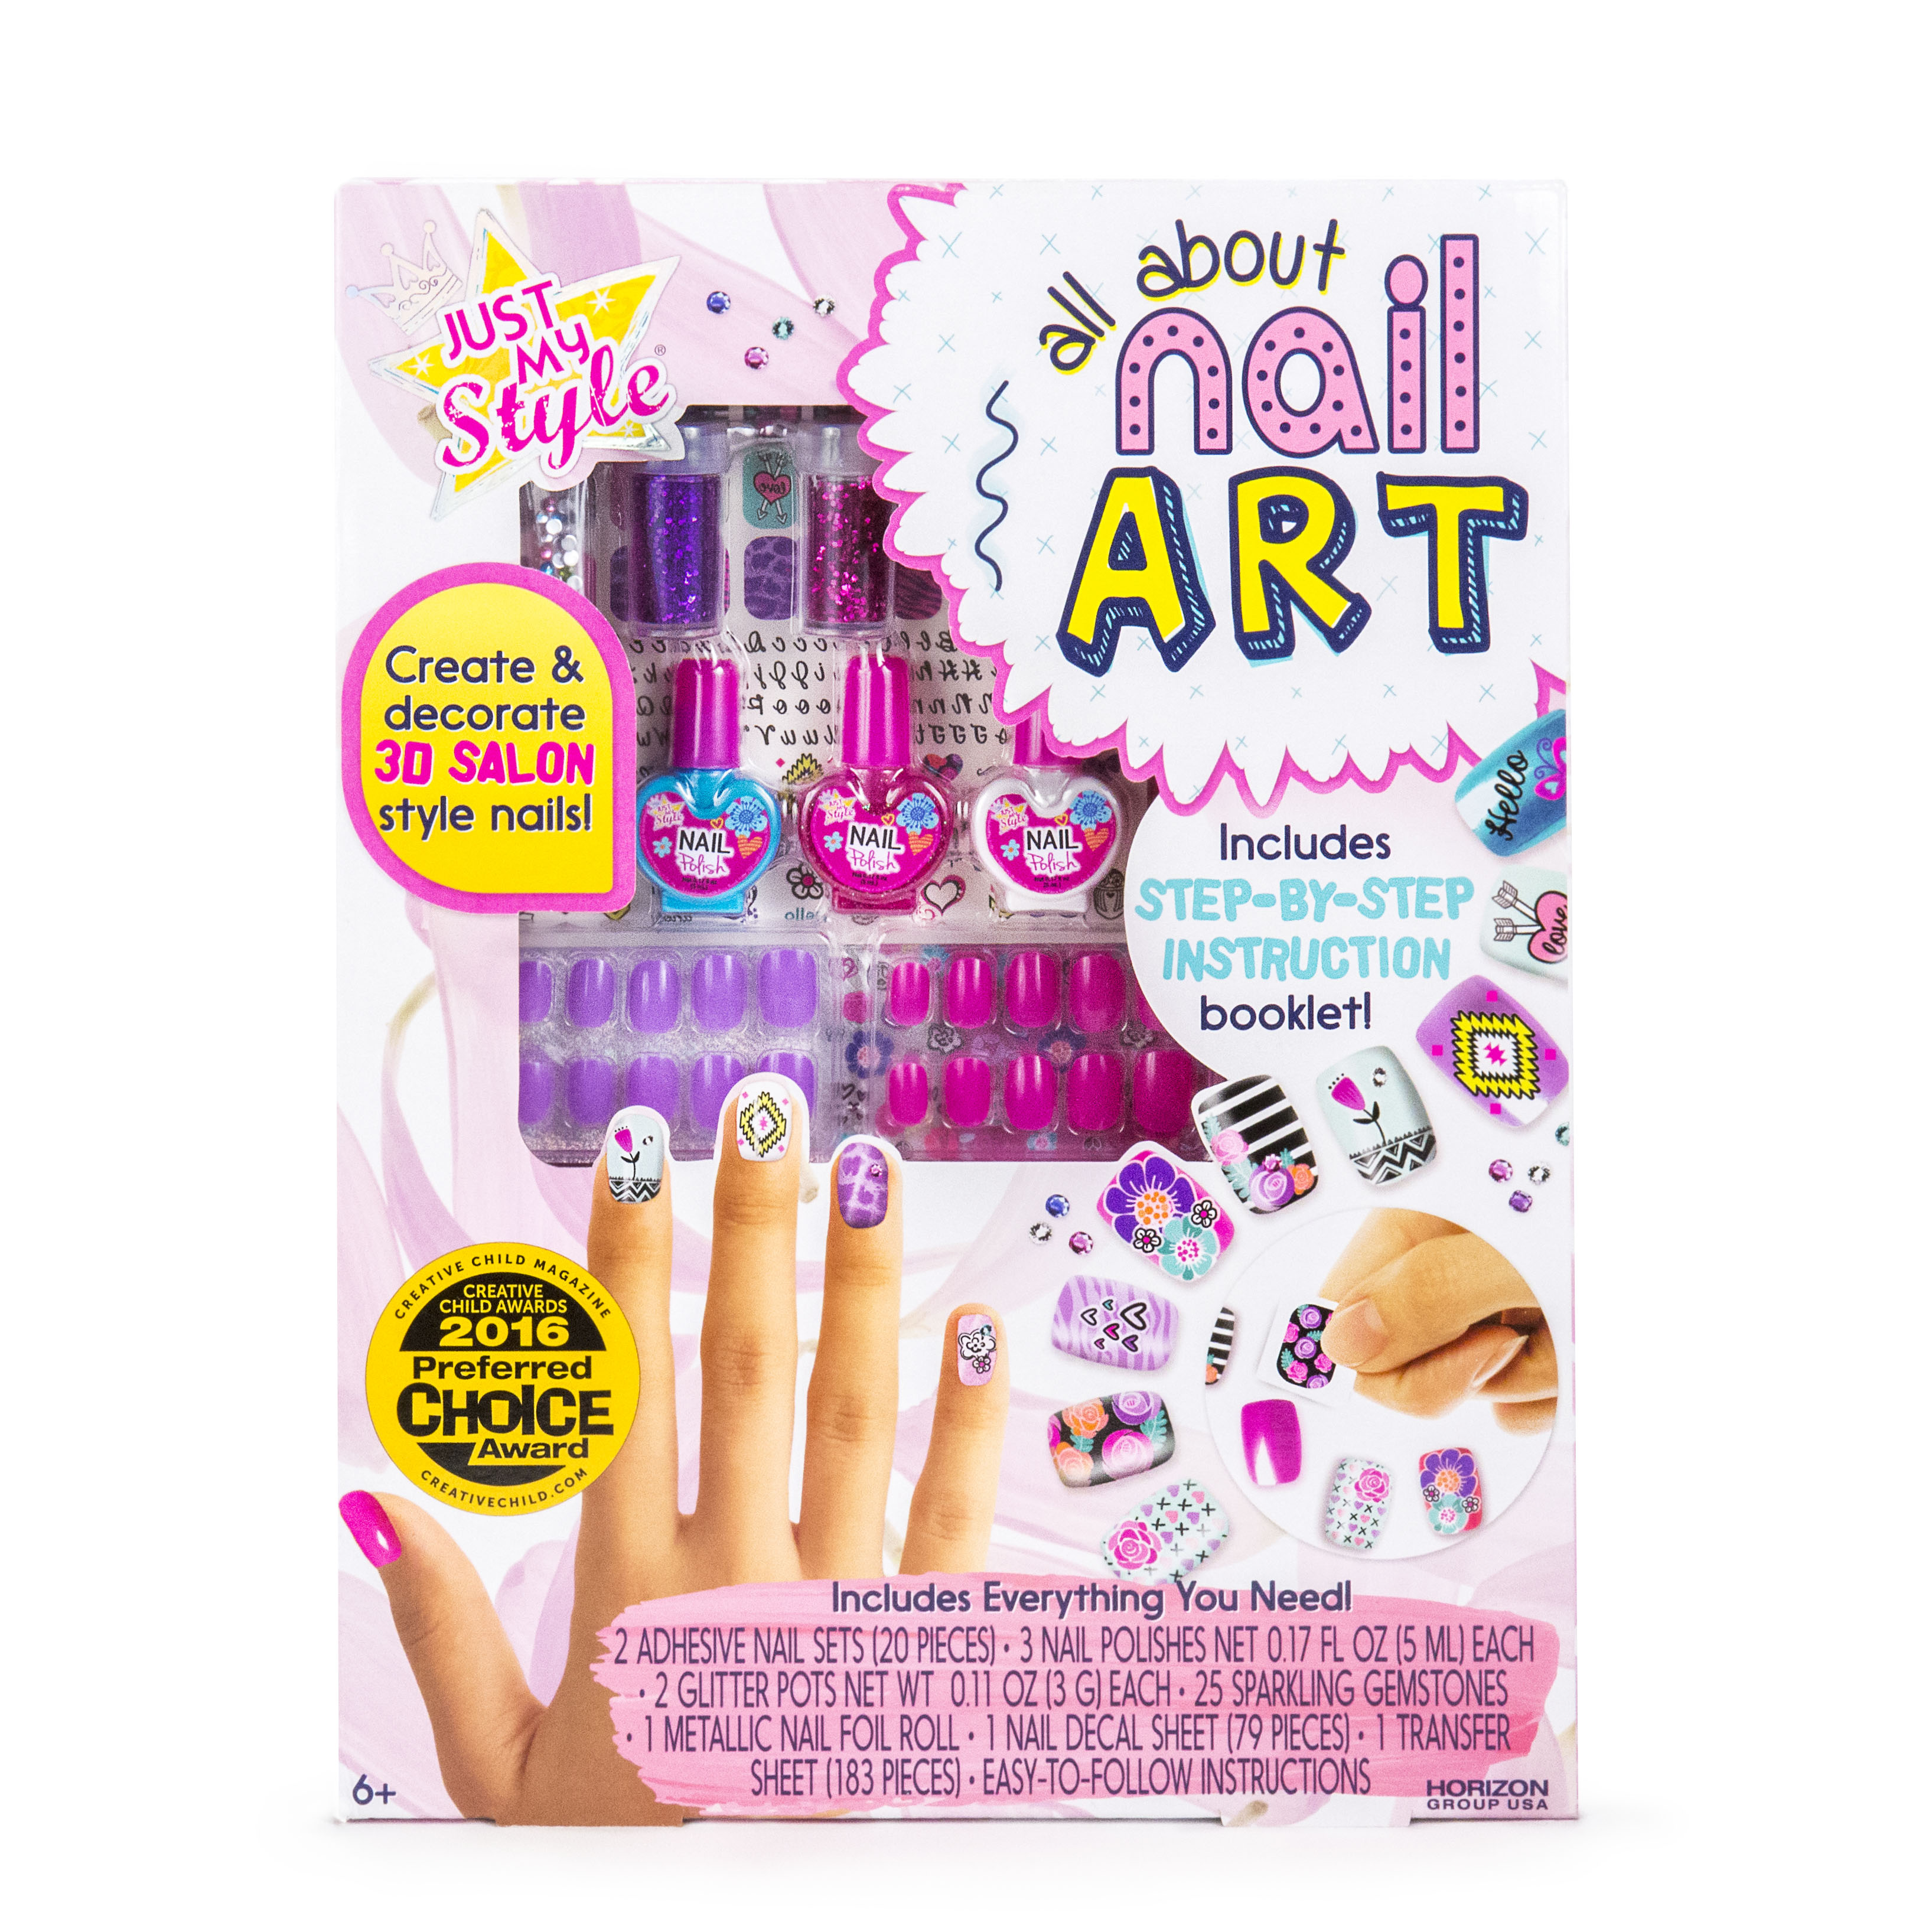 Just My Style All About Nail Art by Horizon Group USA - Walmart.com